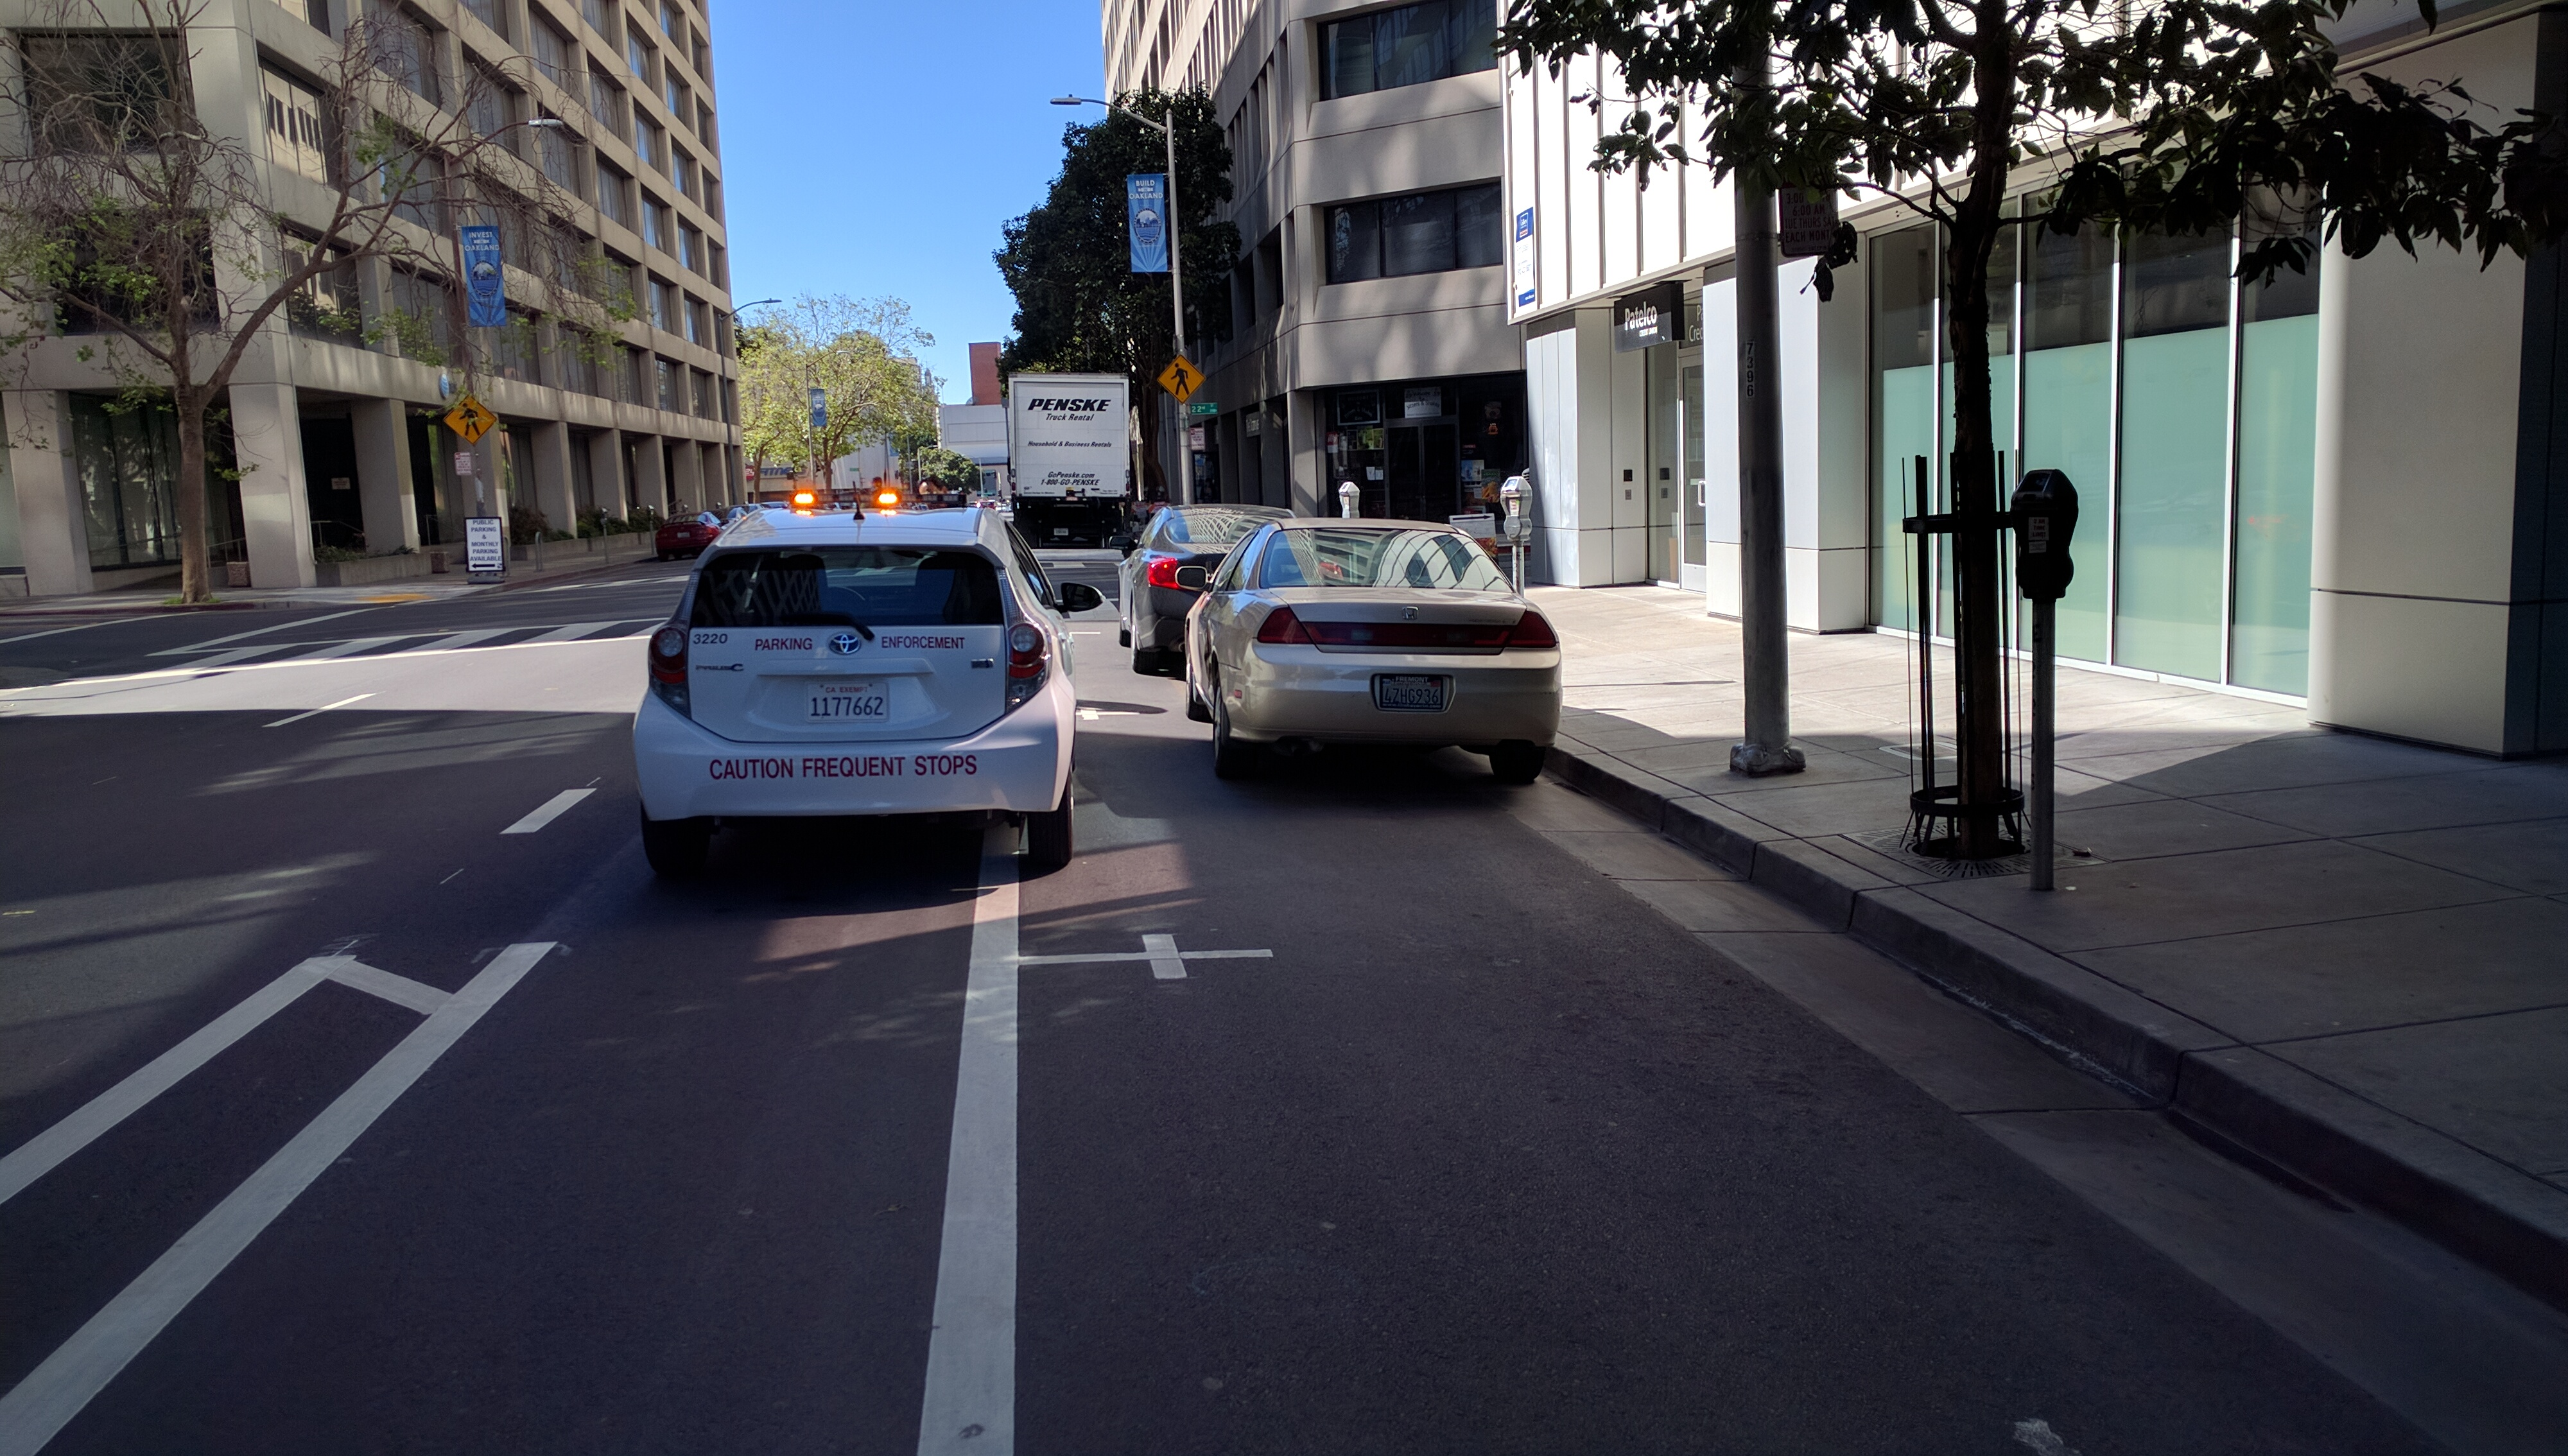 Some people say we just need better parking enforcement to keep Oakland's Webster Street Bike lane clear, but Streetsblog isn't so sure. Photo: Streetsblog.